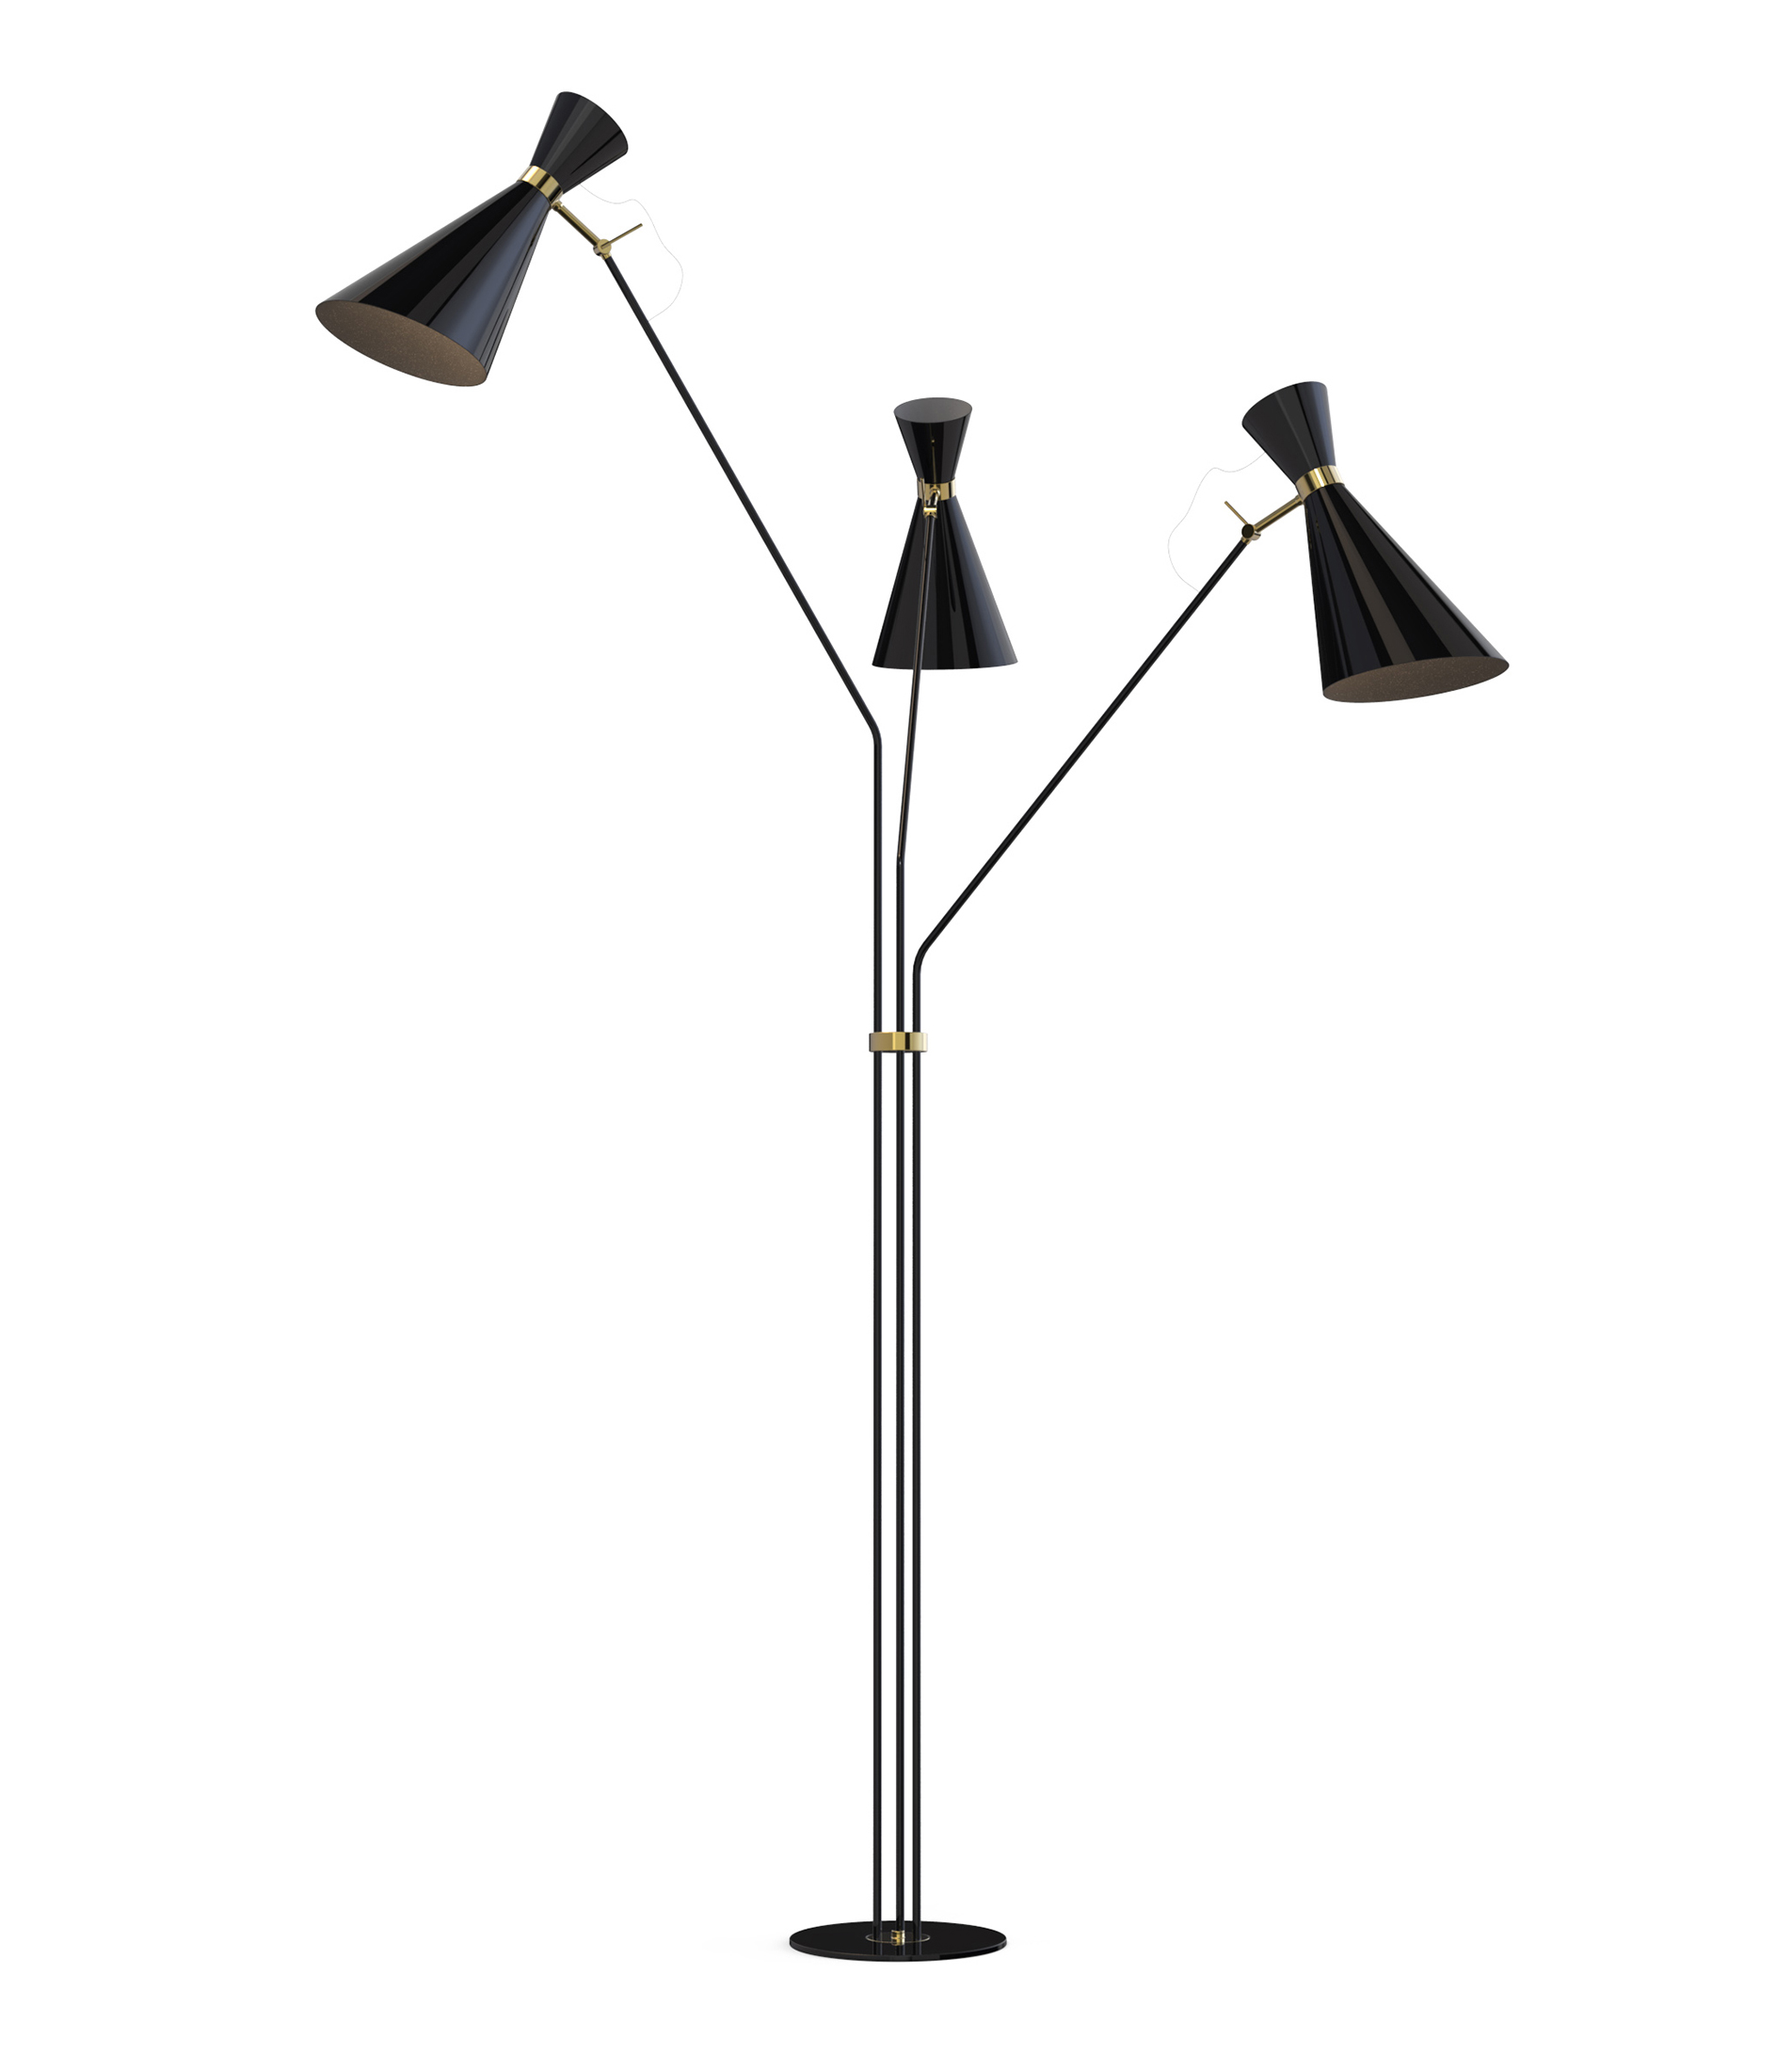 How an Arc Floor Lamp Can Change Your Whole Decor 5 arc floor lamp How an Arc Floor Lamp Can Change Your Whole Decor How an Arc Floor Lamp Can Change Your Whole Decor 5